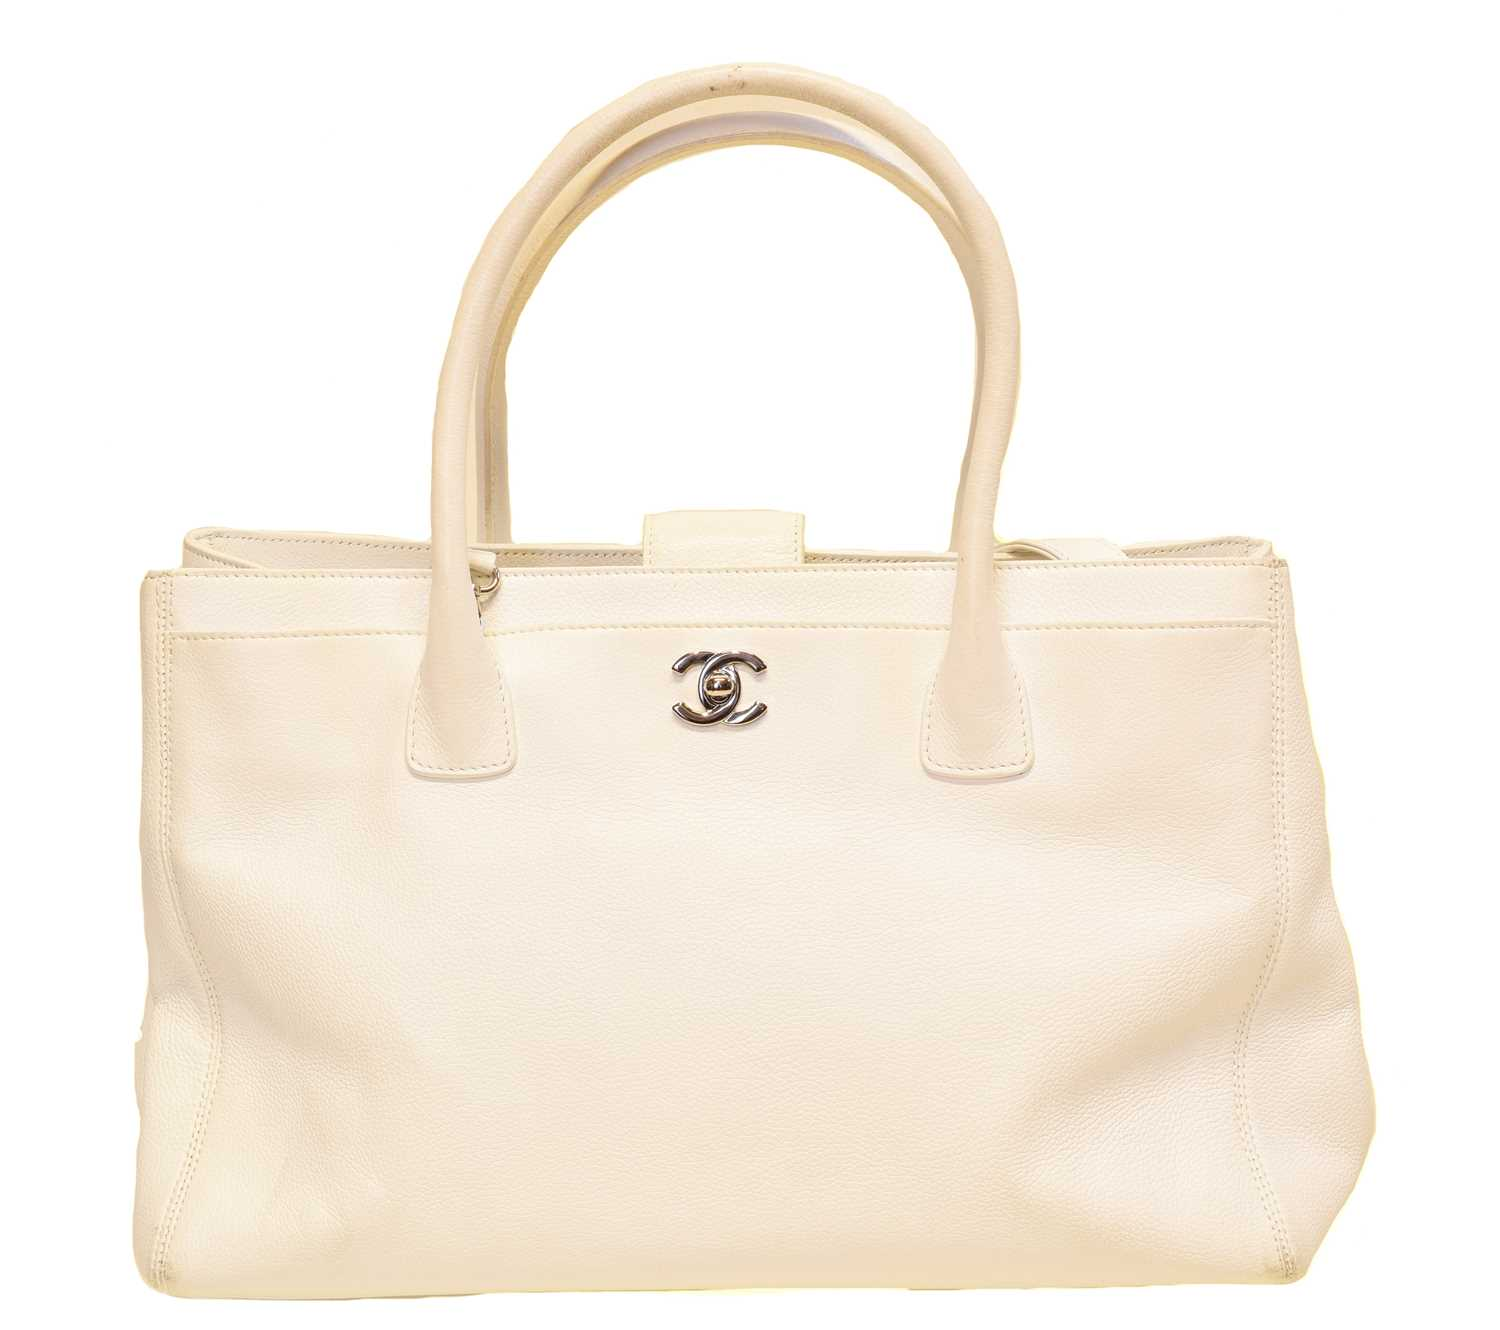 A Chanel Cerf Tote Shoulder Bag, circa 2008-9, the white grained calf leather exterior with white leather straps and silver-tone hardware, serial no. 12381545. With shoulder strap, maker's authenticty card and pouch.